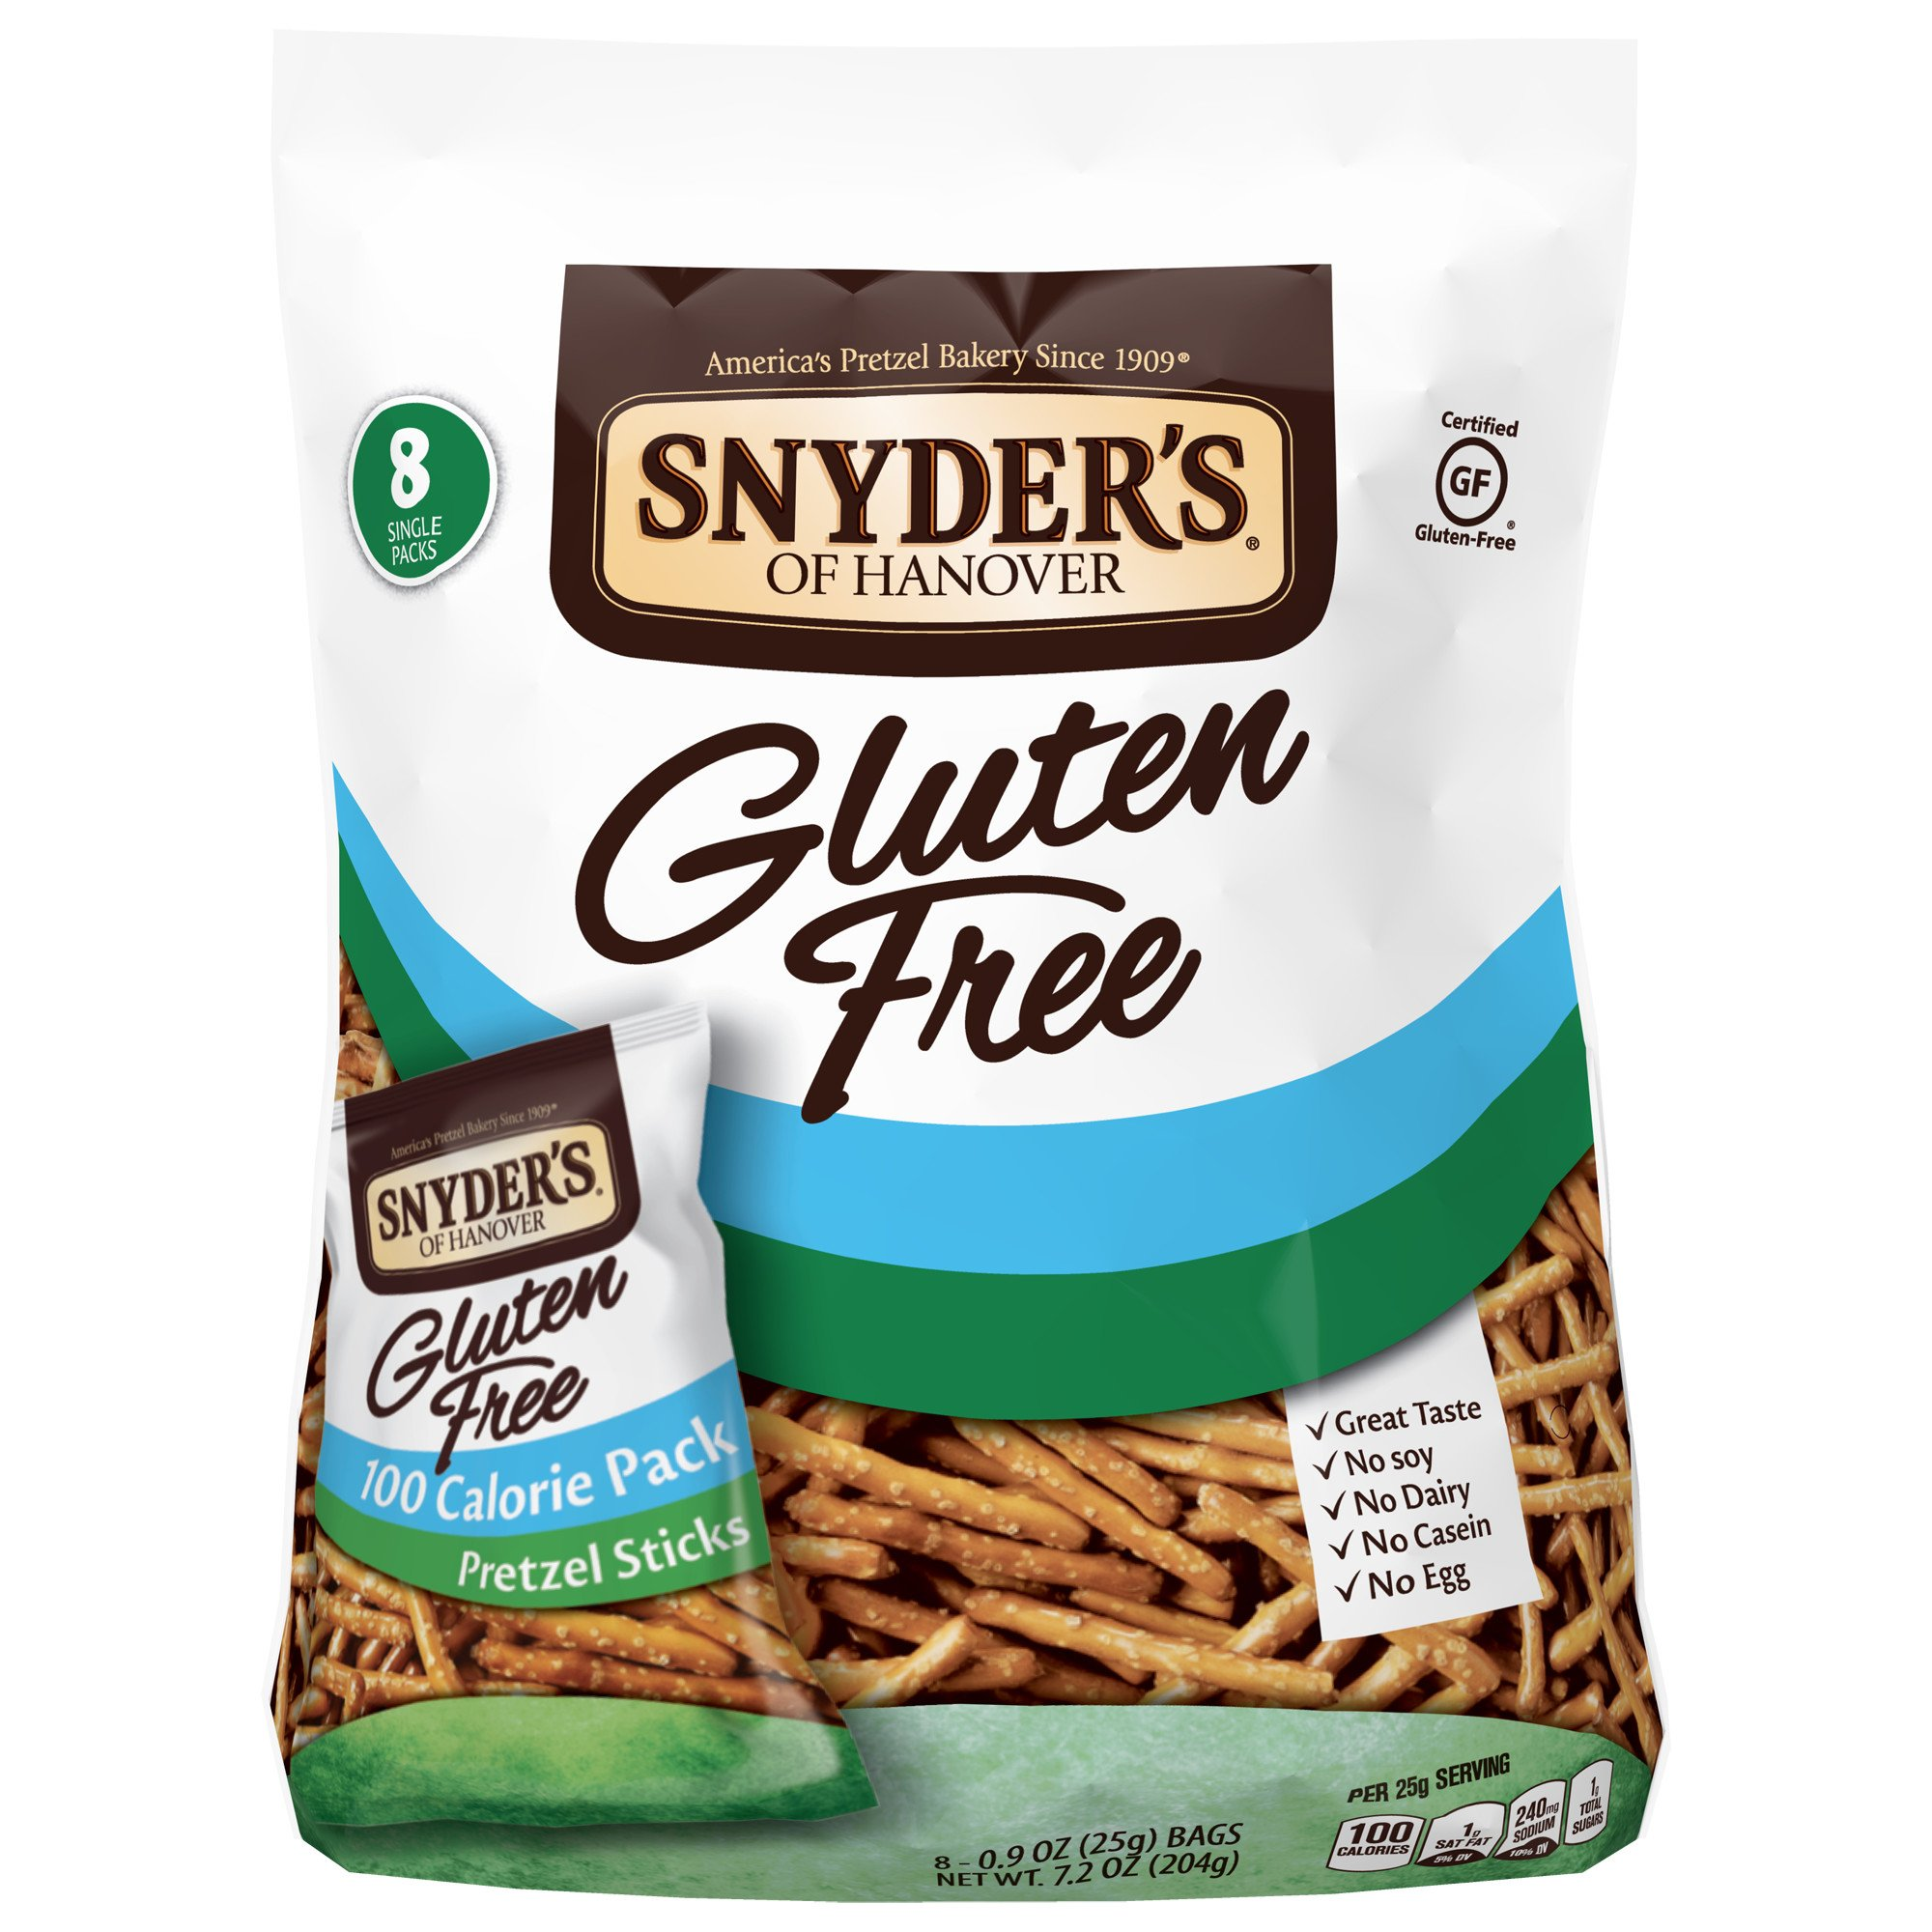 Snyder's of Hanover Gluten Free Pretzel Sticks, 100 Calorie Multipack, 8 Count by Snyder's of Hanover